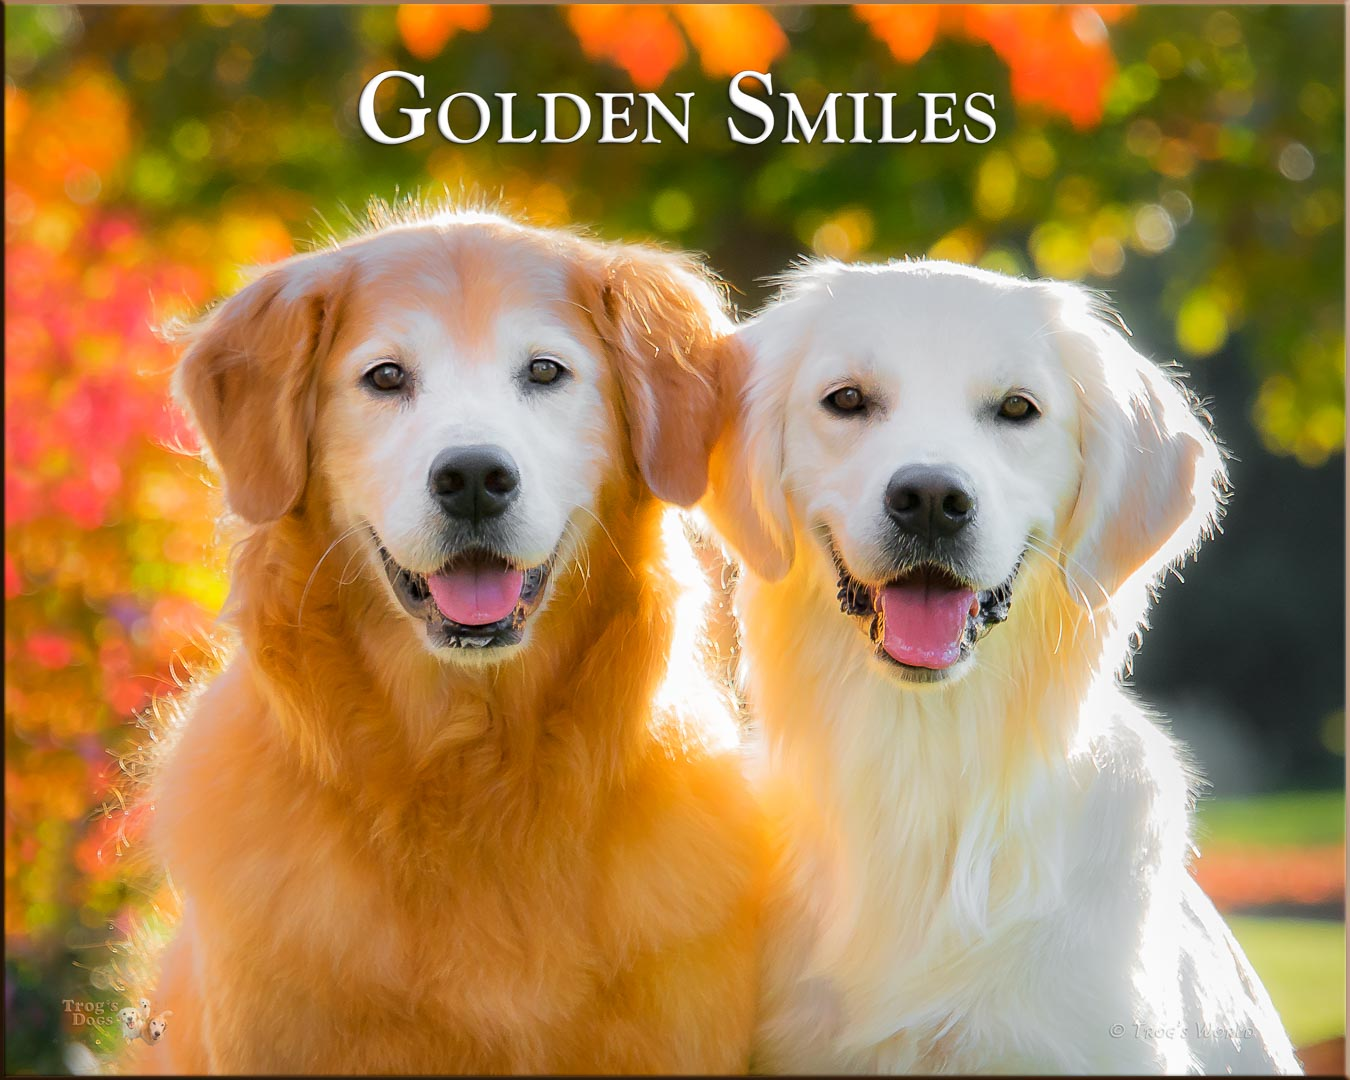 Two Golden Retrievers smiling